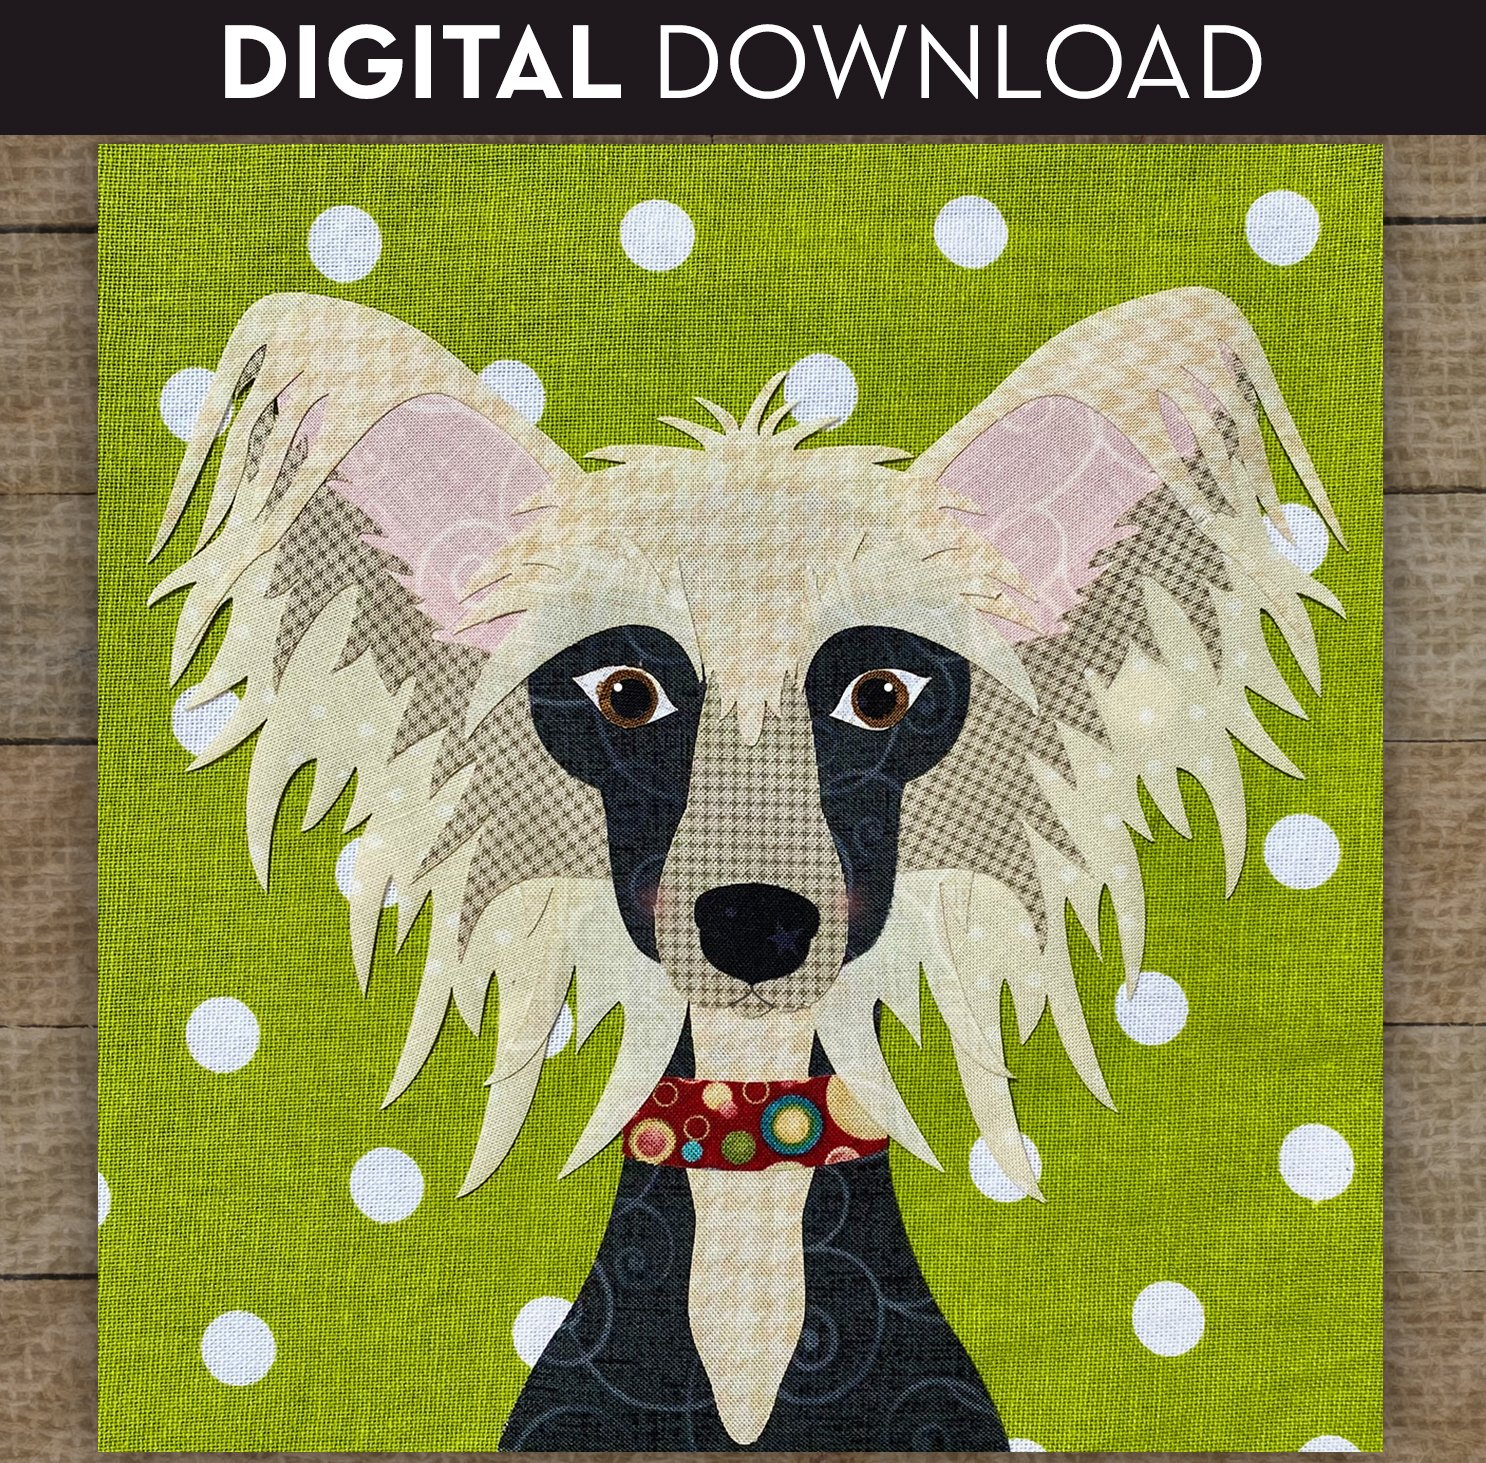 Chinese Crested - Download